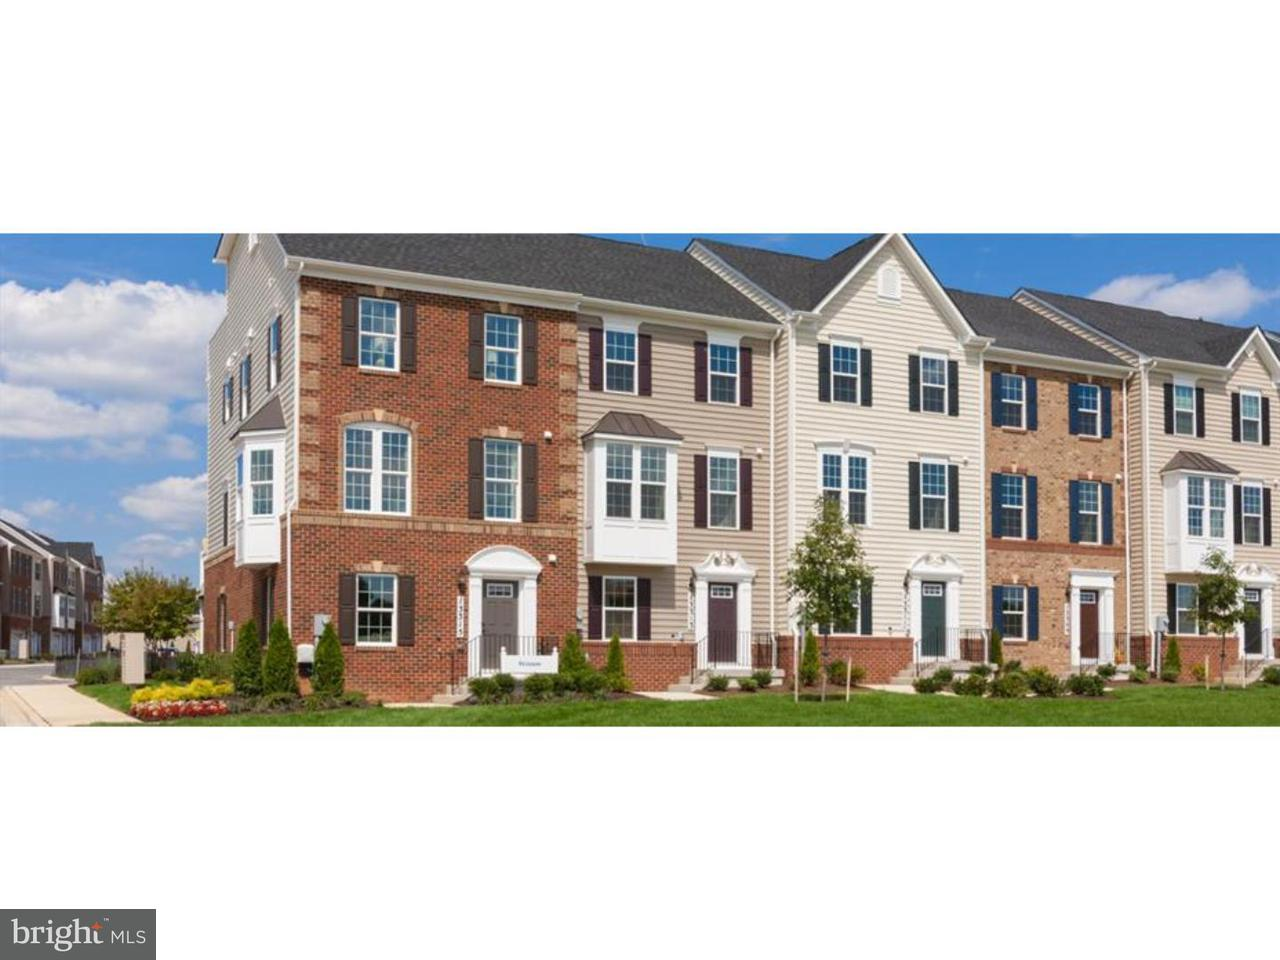 Townhouse for Sale at 3900 N SCHOOL Lane Souderton, Pennsylvania 18964 United States